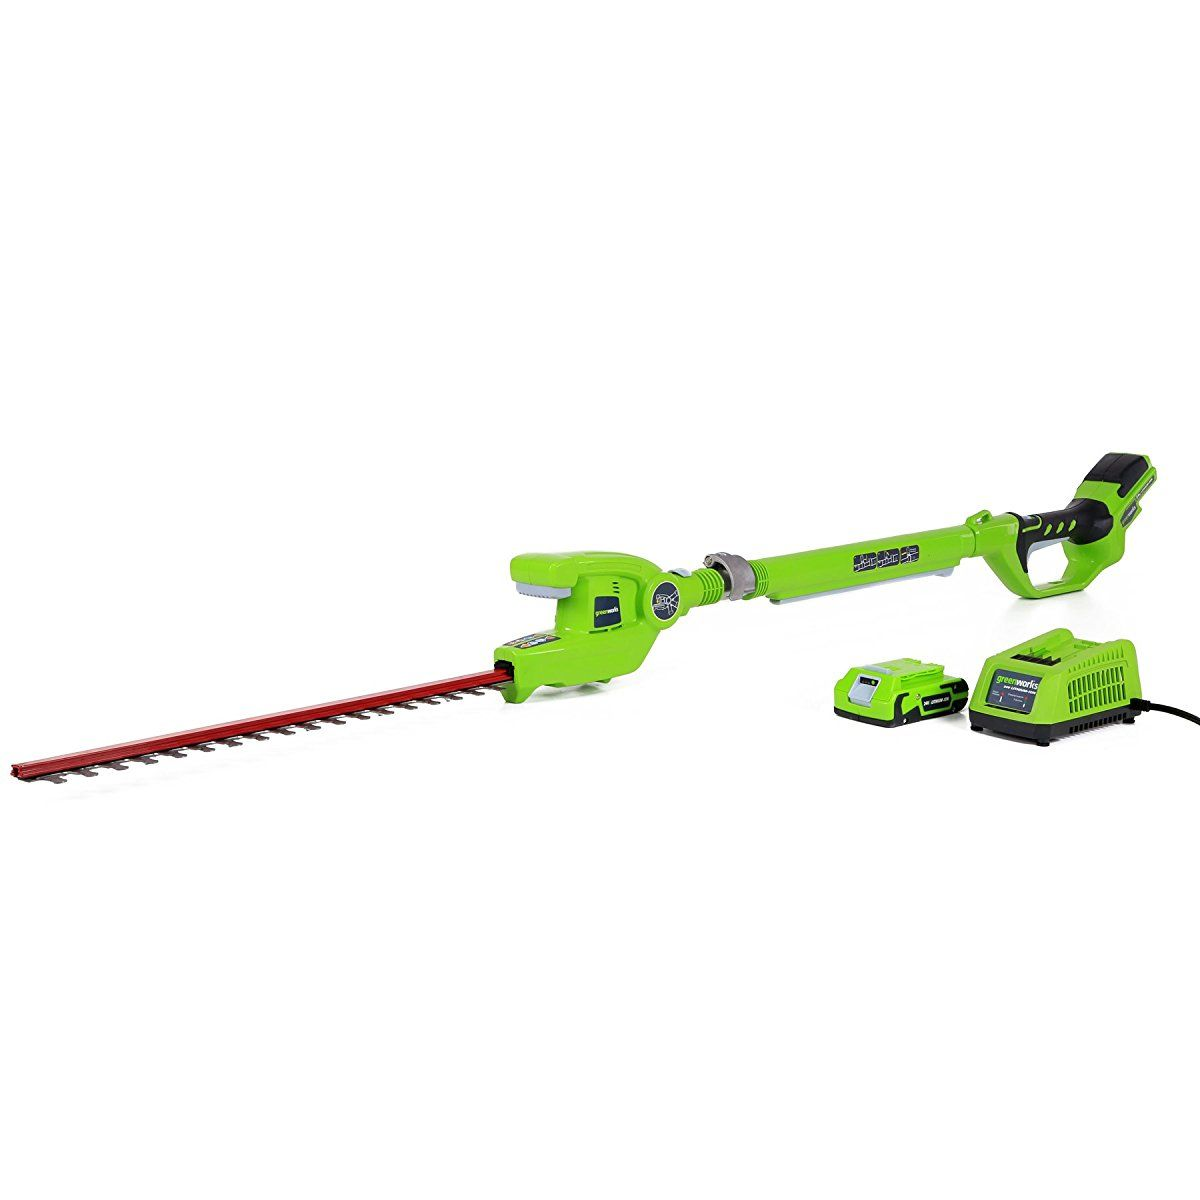 Greenworks 22242 24v 20 Inch Cordless Pole Hedge Trimmer 2ah Battery And Charger Included Hedge Trimmers Hedges Trimmers